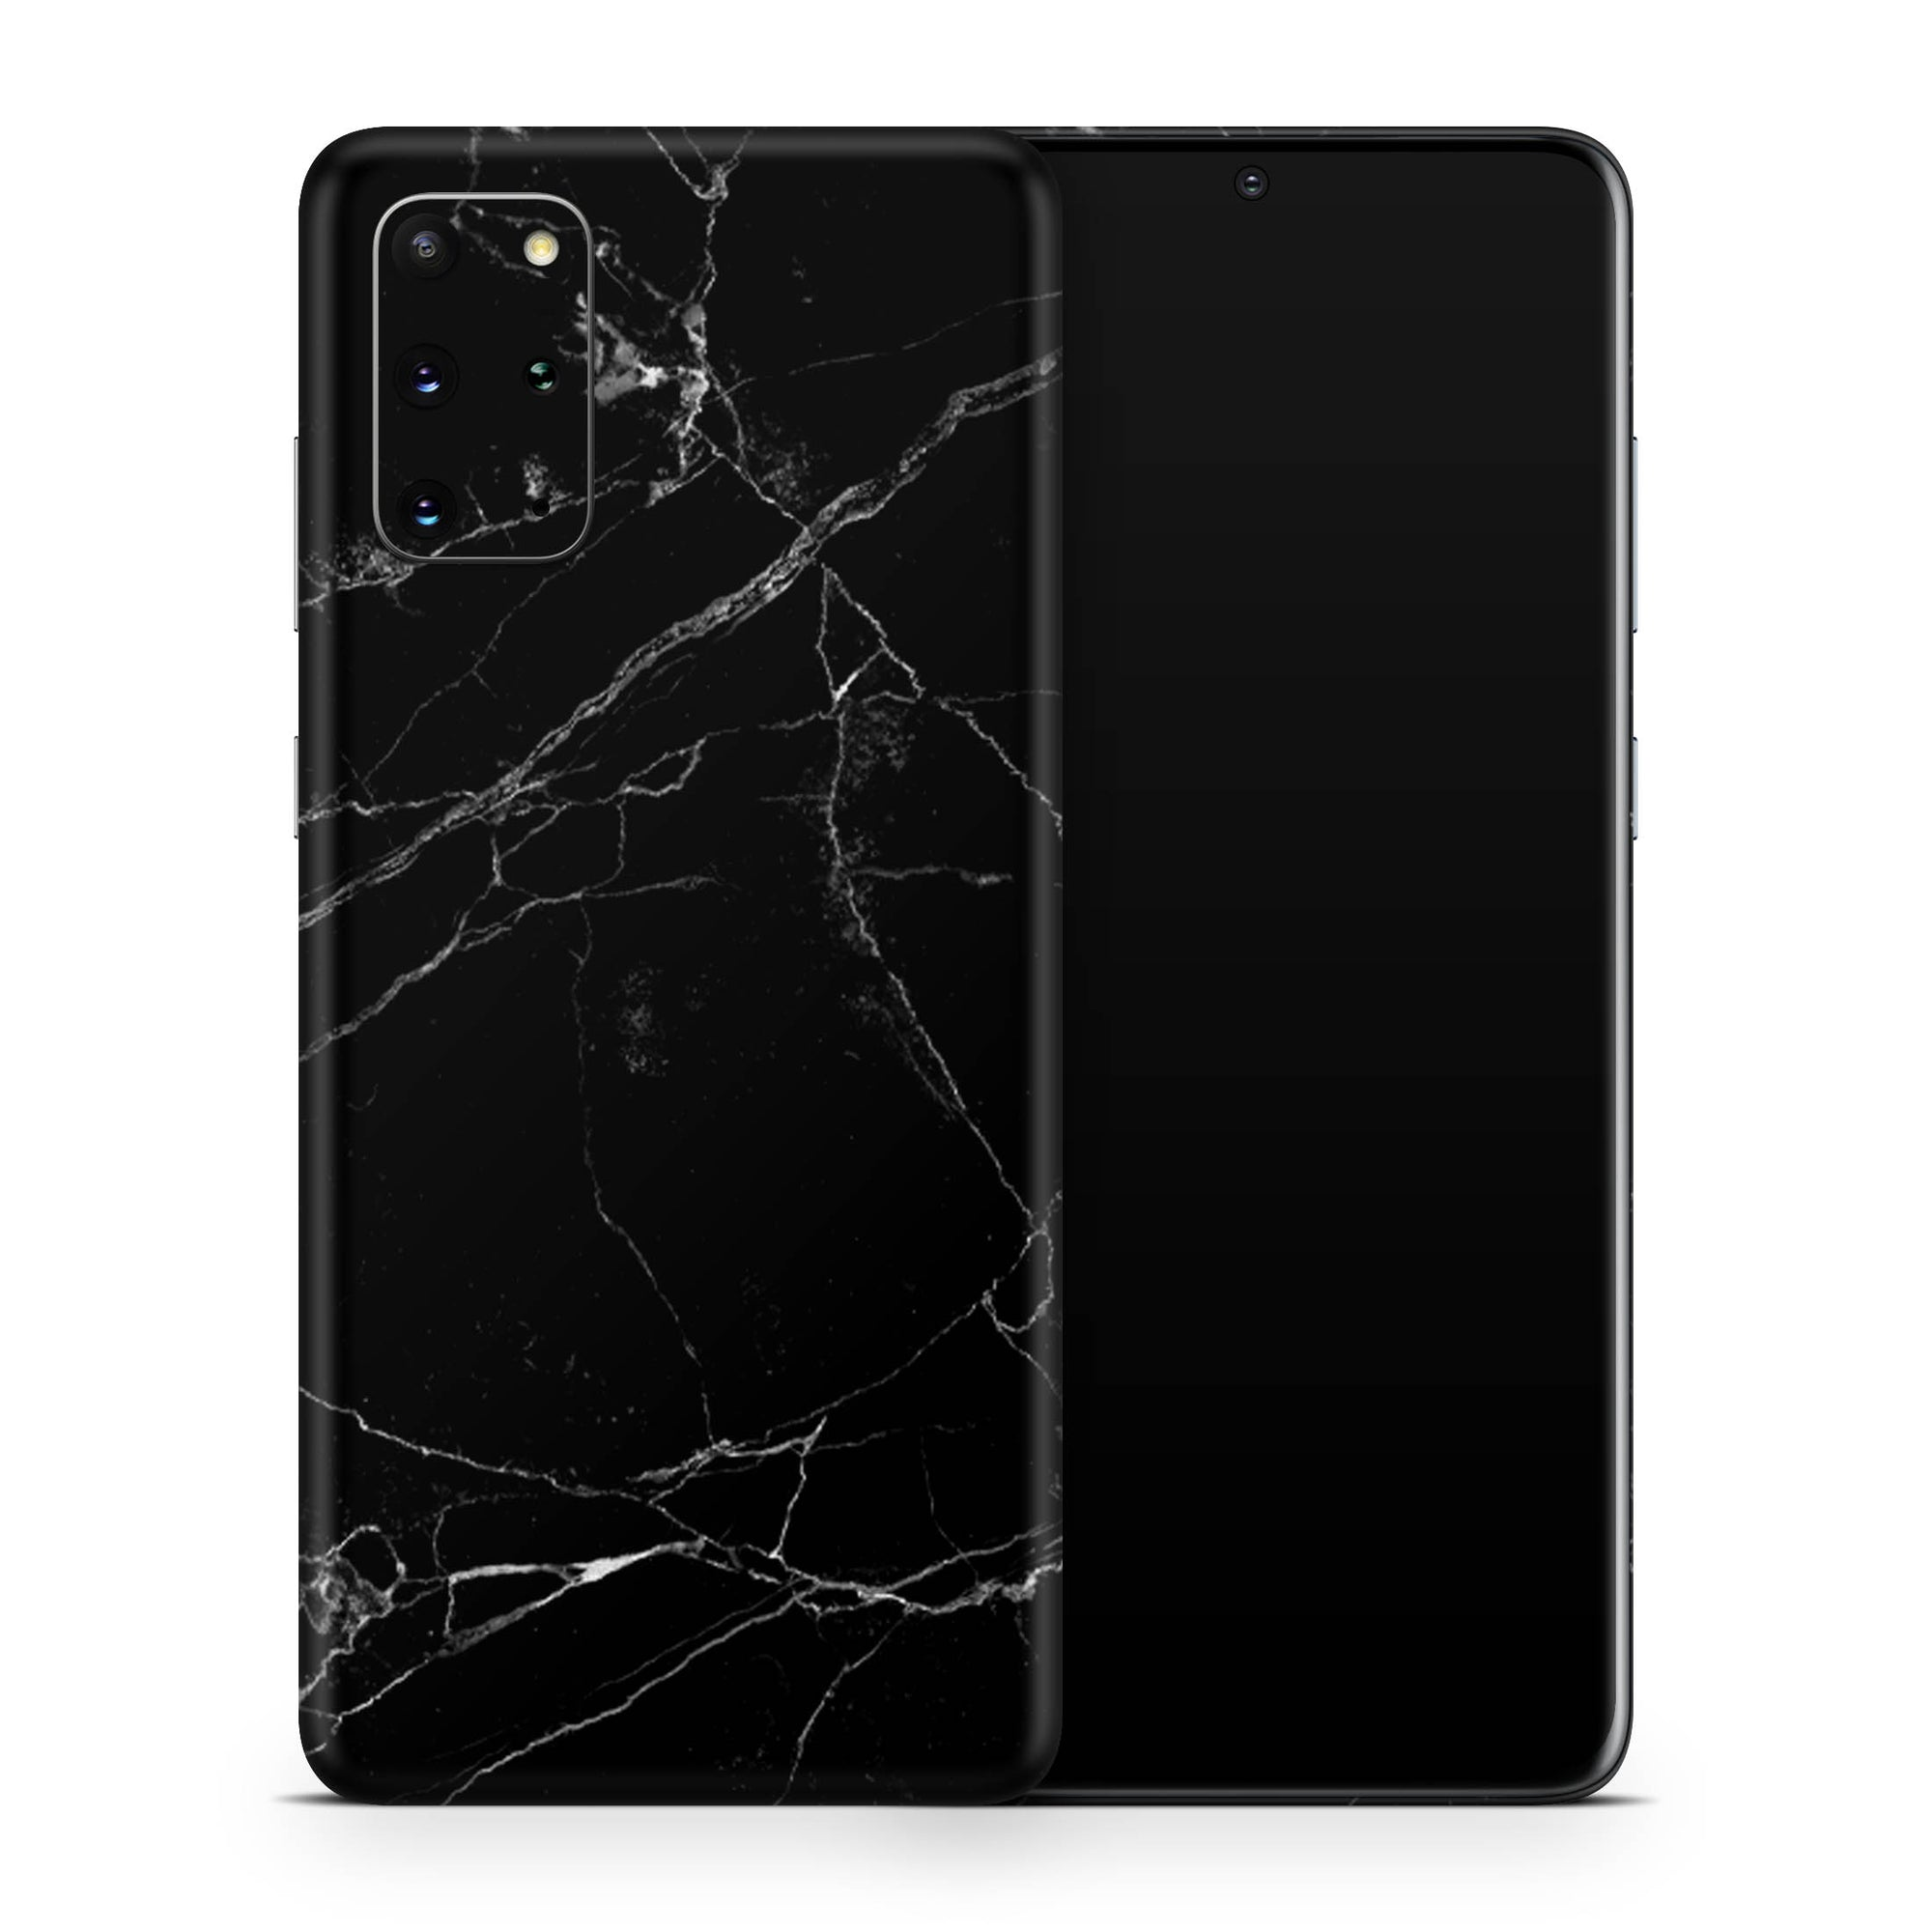 Black Marble Galaxy S20 Ultra Skin + Case-Uniqfind